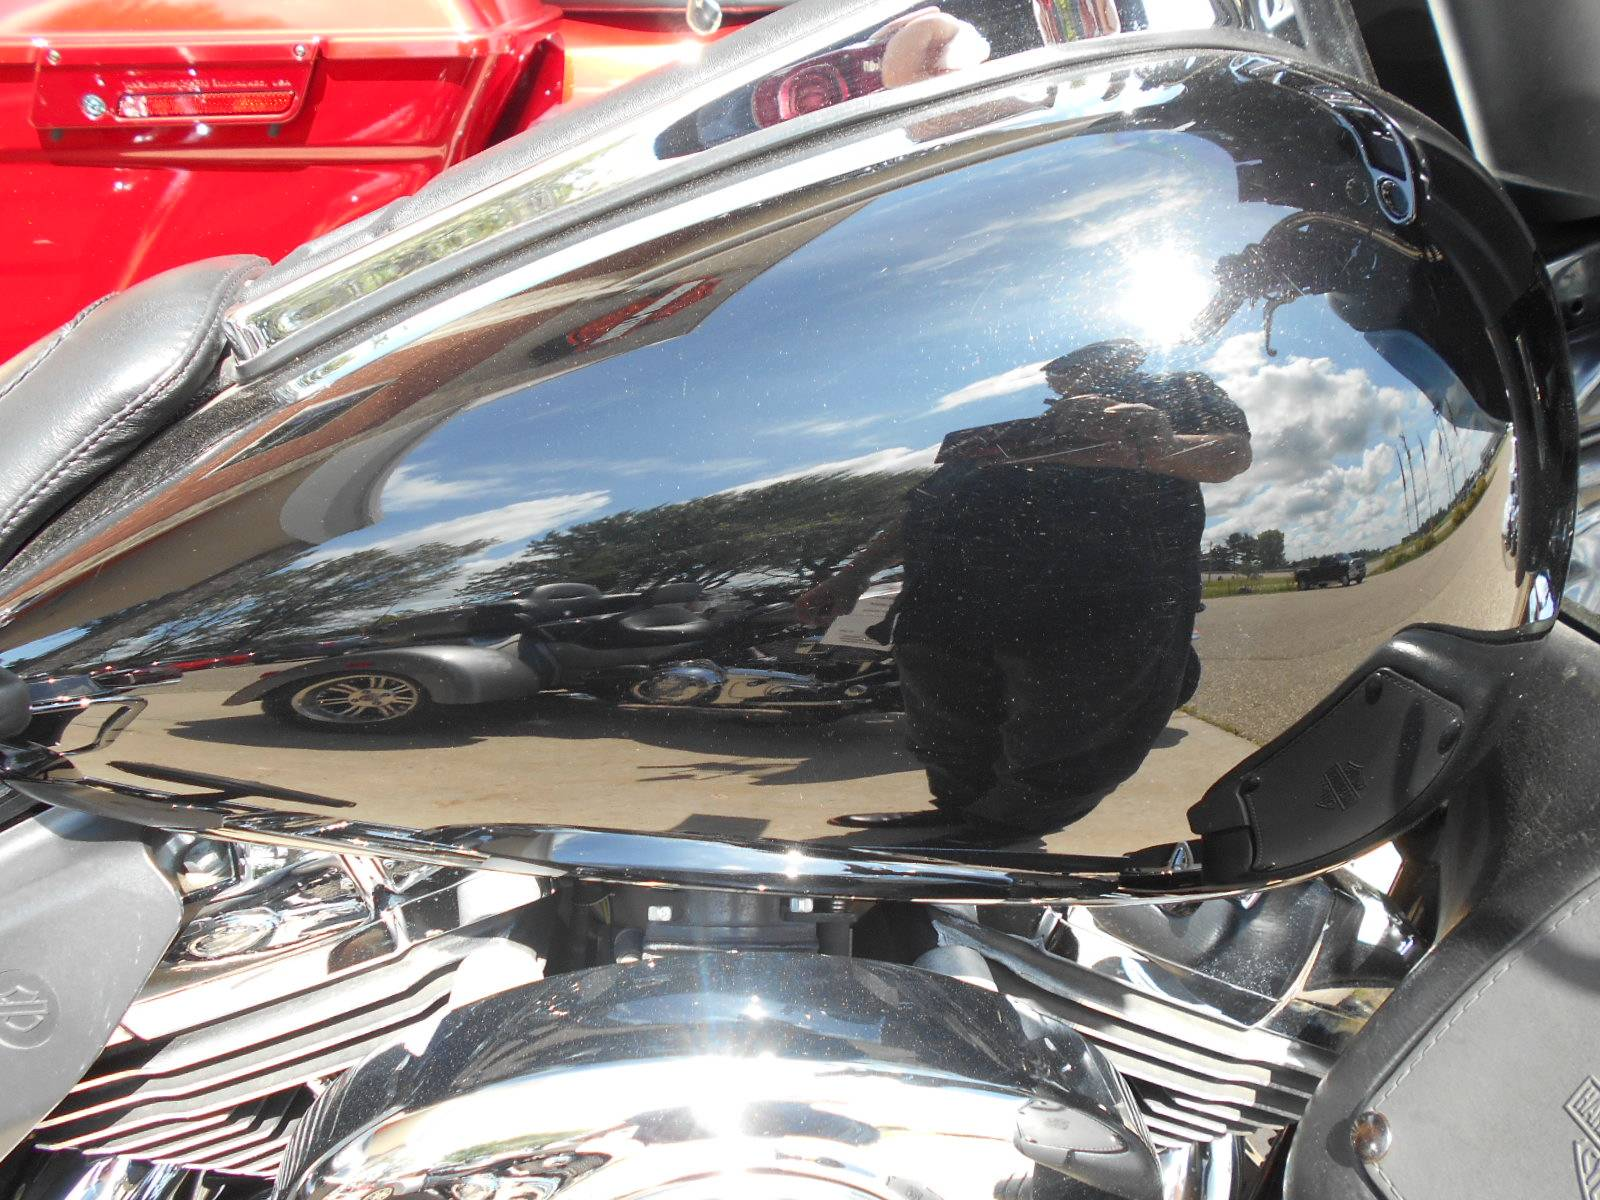 2005 Harley-Davidson FLHTC/FLHTCI Electra Glide® Classic in Mauston, Wisconsin - Photo 2